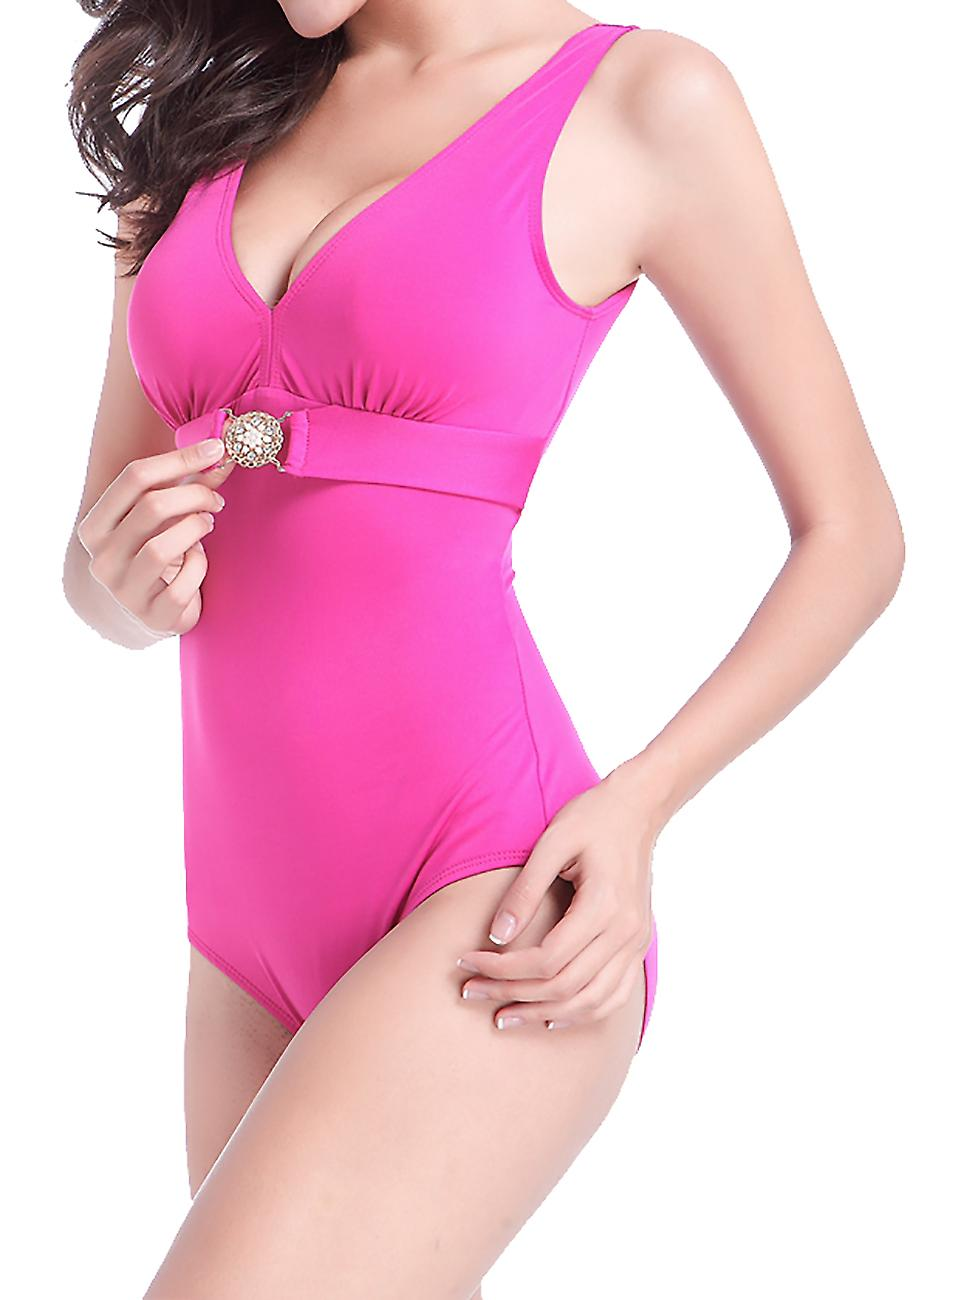 Waooh - 1 Piece Swimsuit with Rhinestones Jenya